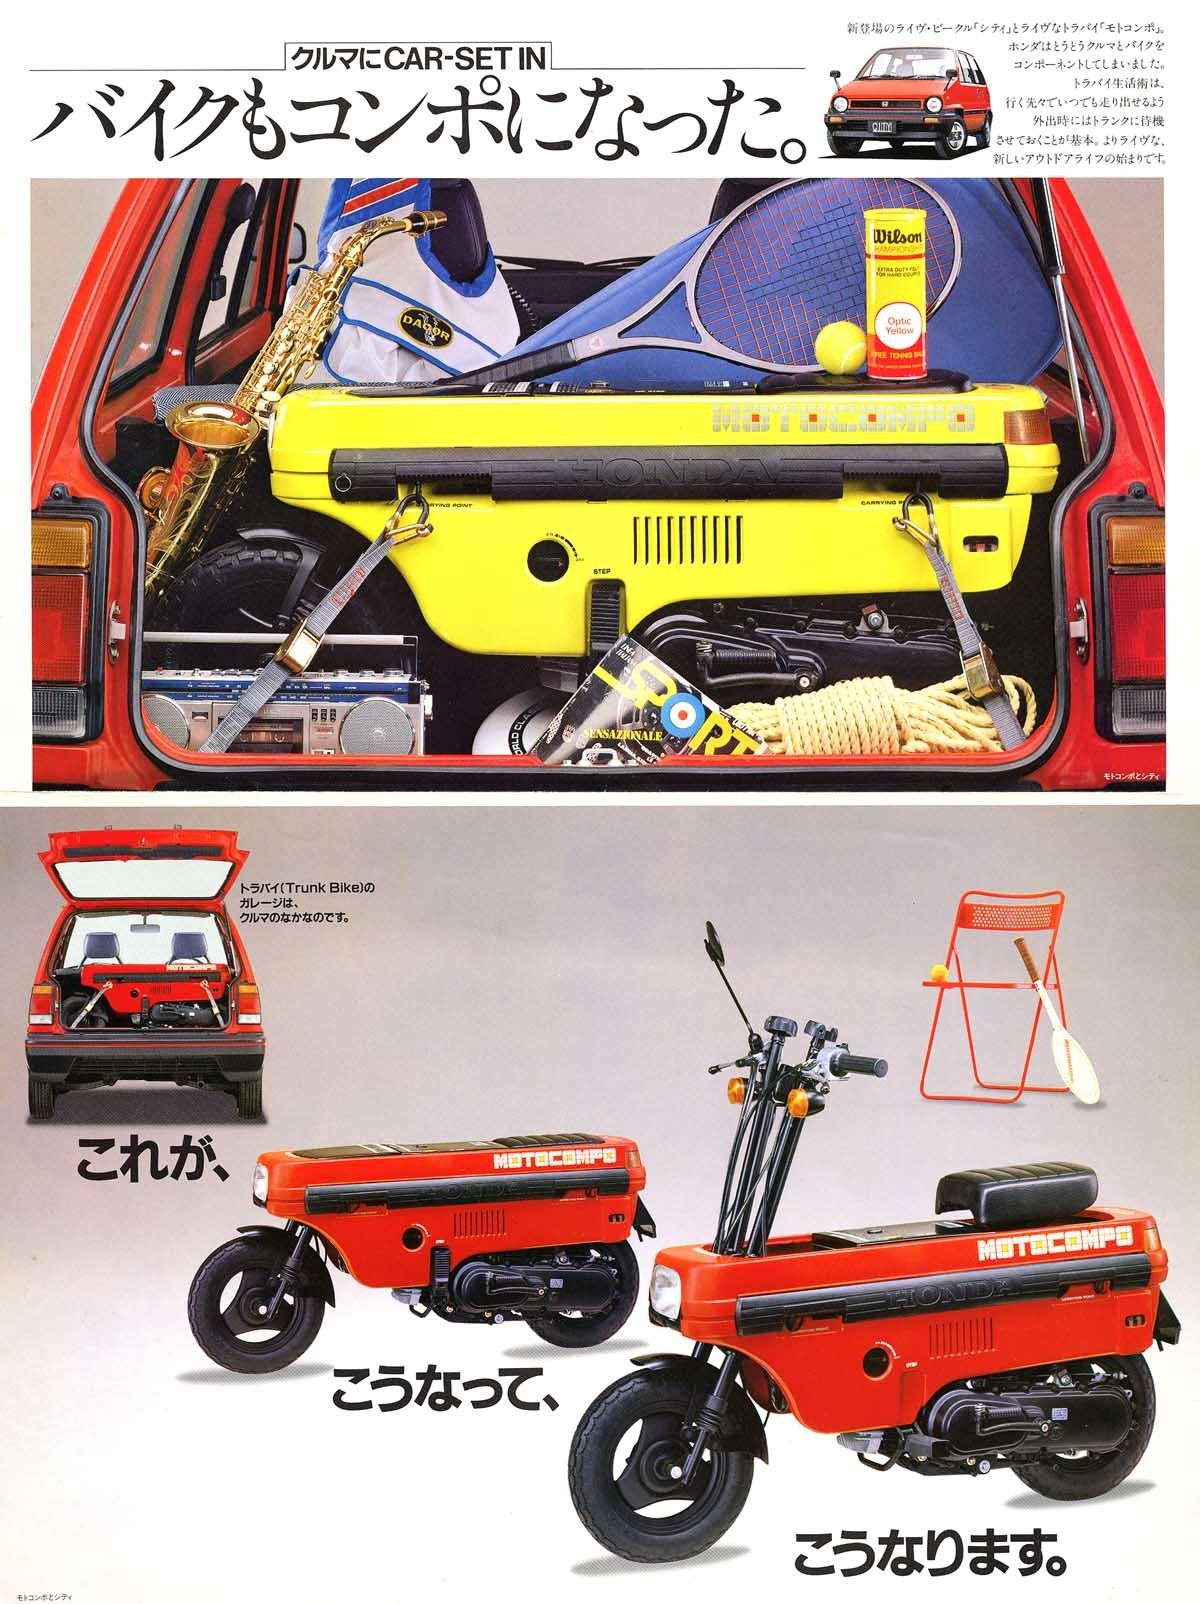 Rocketumblr — Honda Motocompo